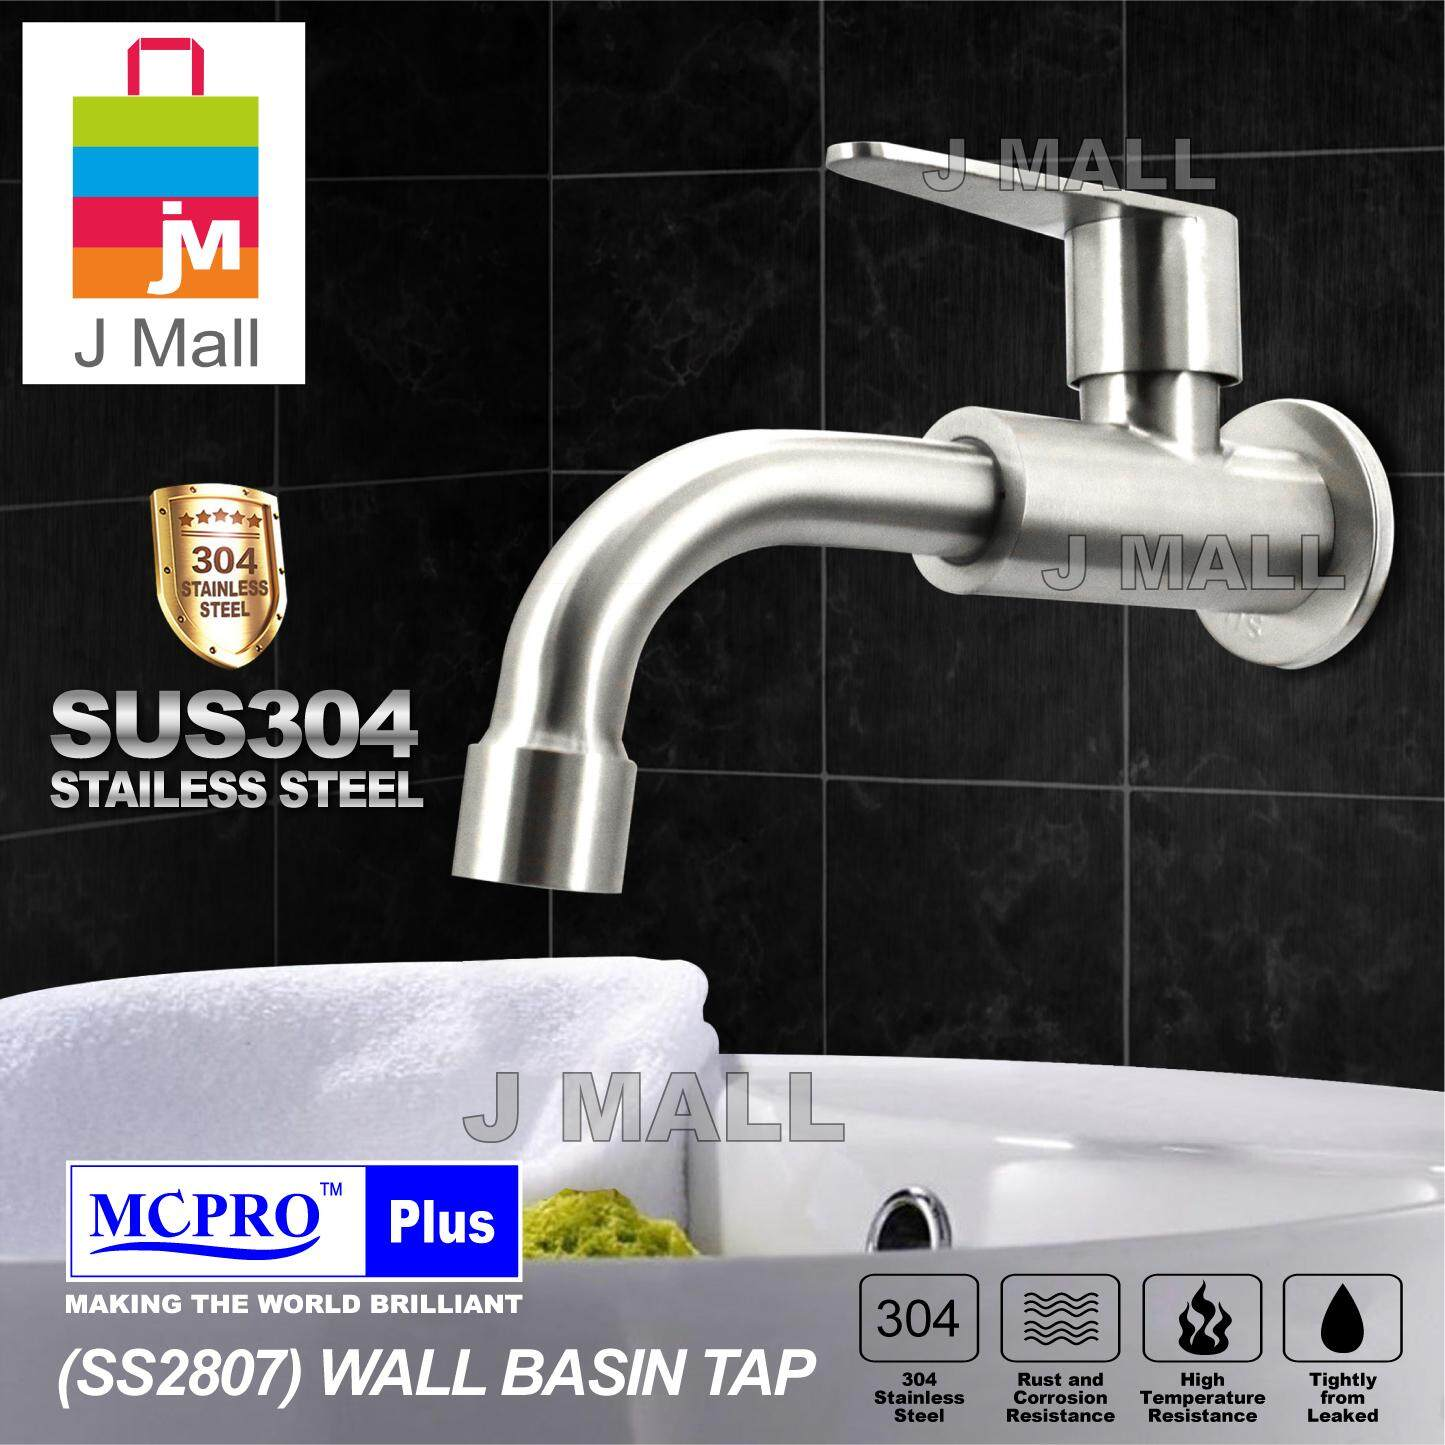 MCPRO Plus Stainless Steel SUS 304 Bathroom / Toilet Faucet WALL SINK BASIN WATER TAP (SS2807)